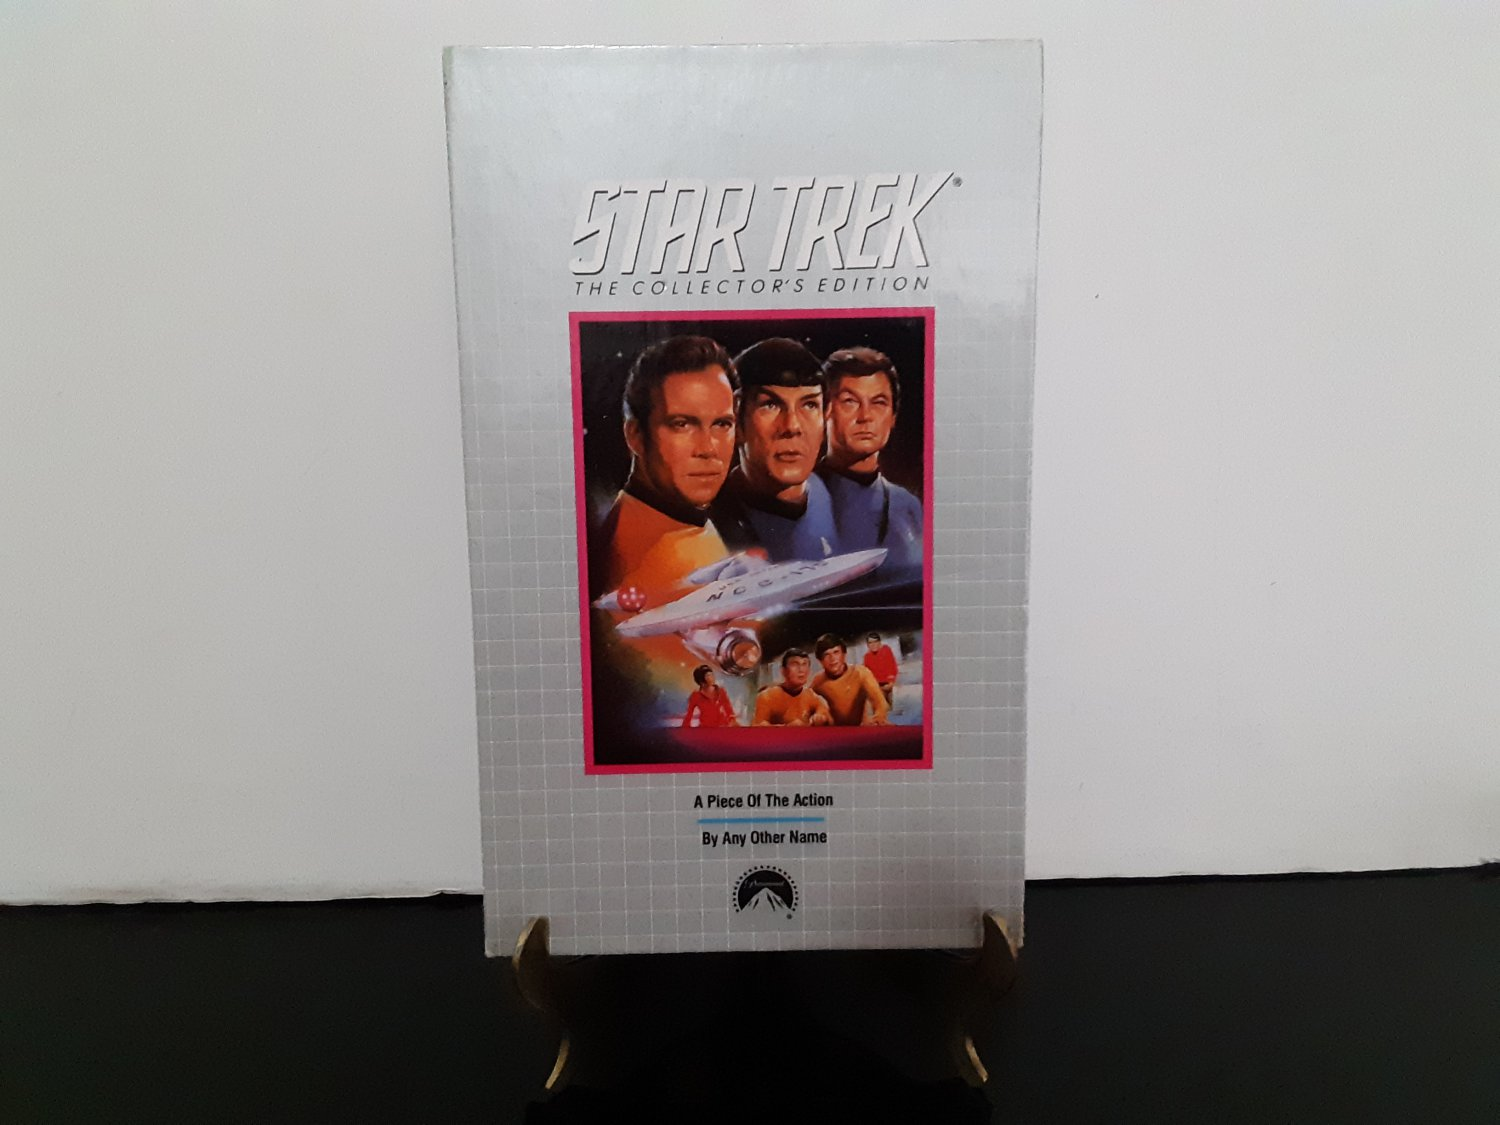 Original Star Trek - A Piece Of The Action / Bt Any Other Name - VHS Tape